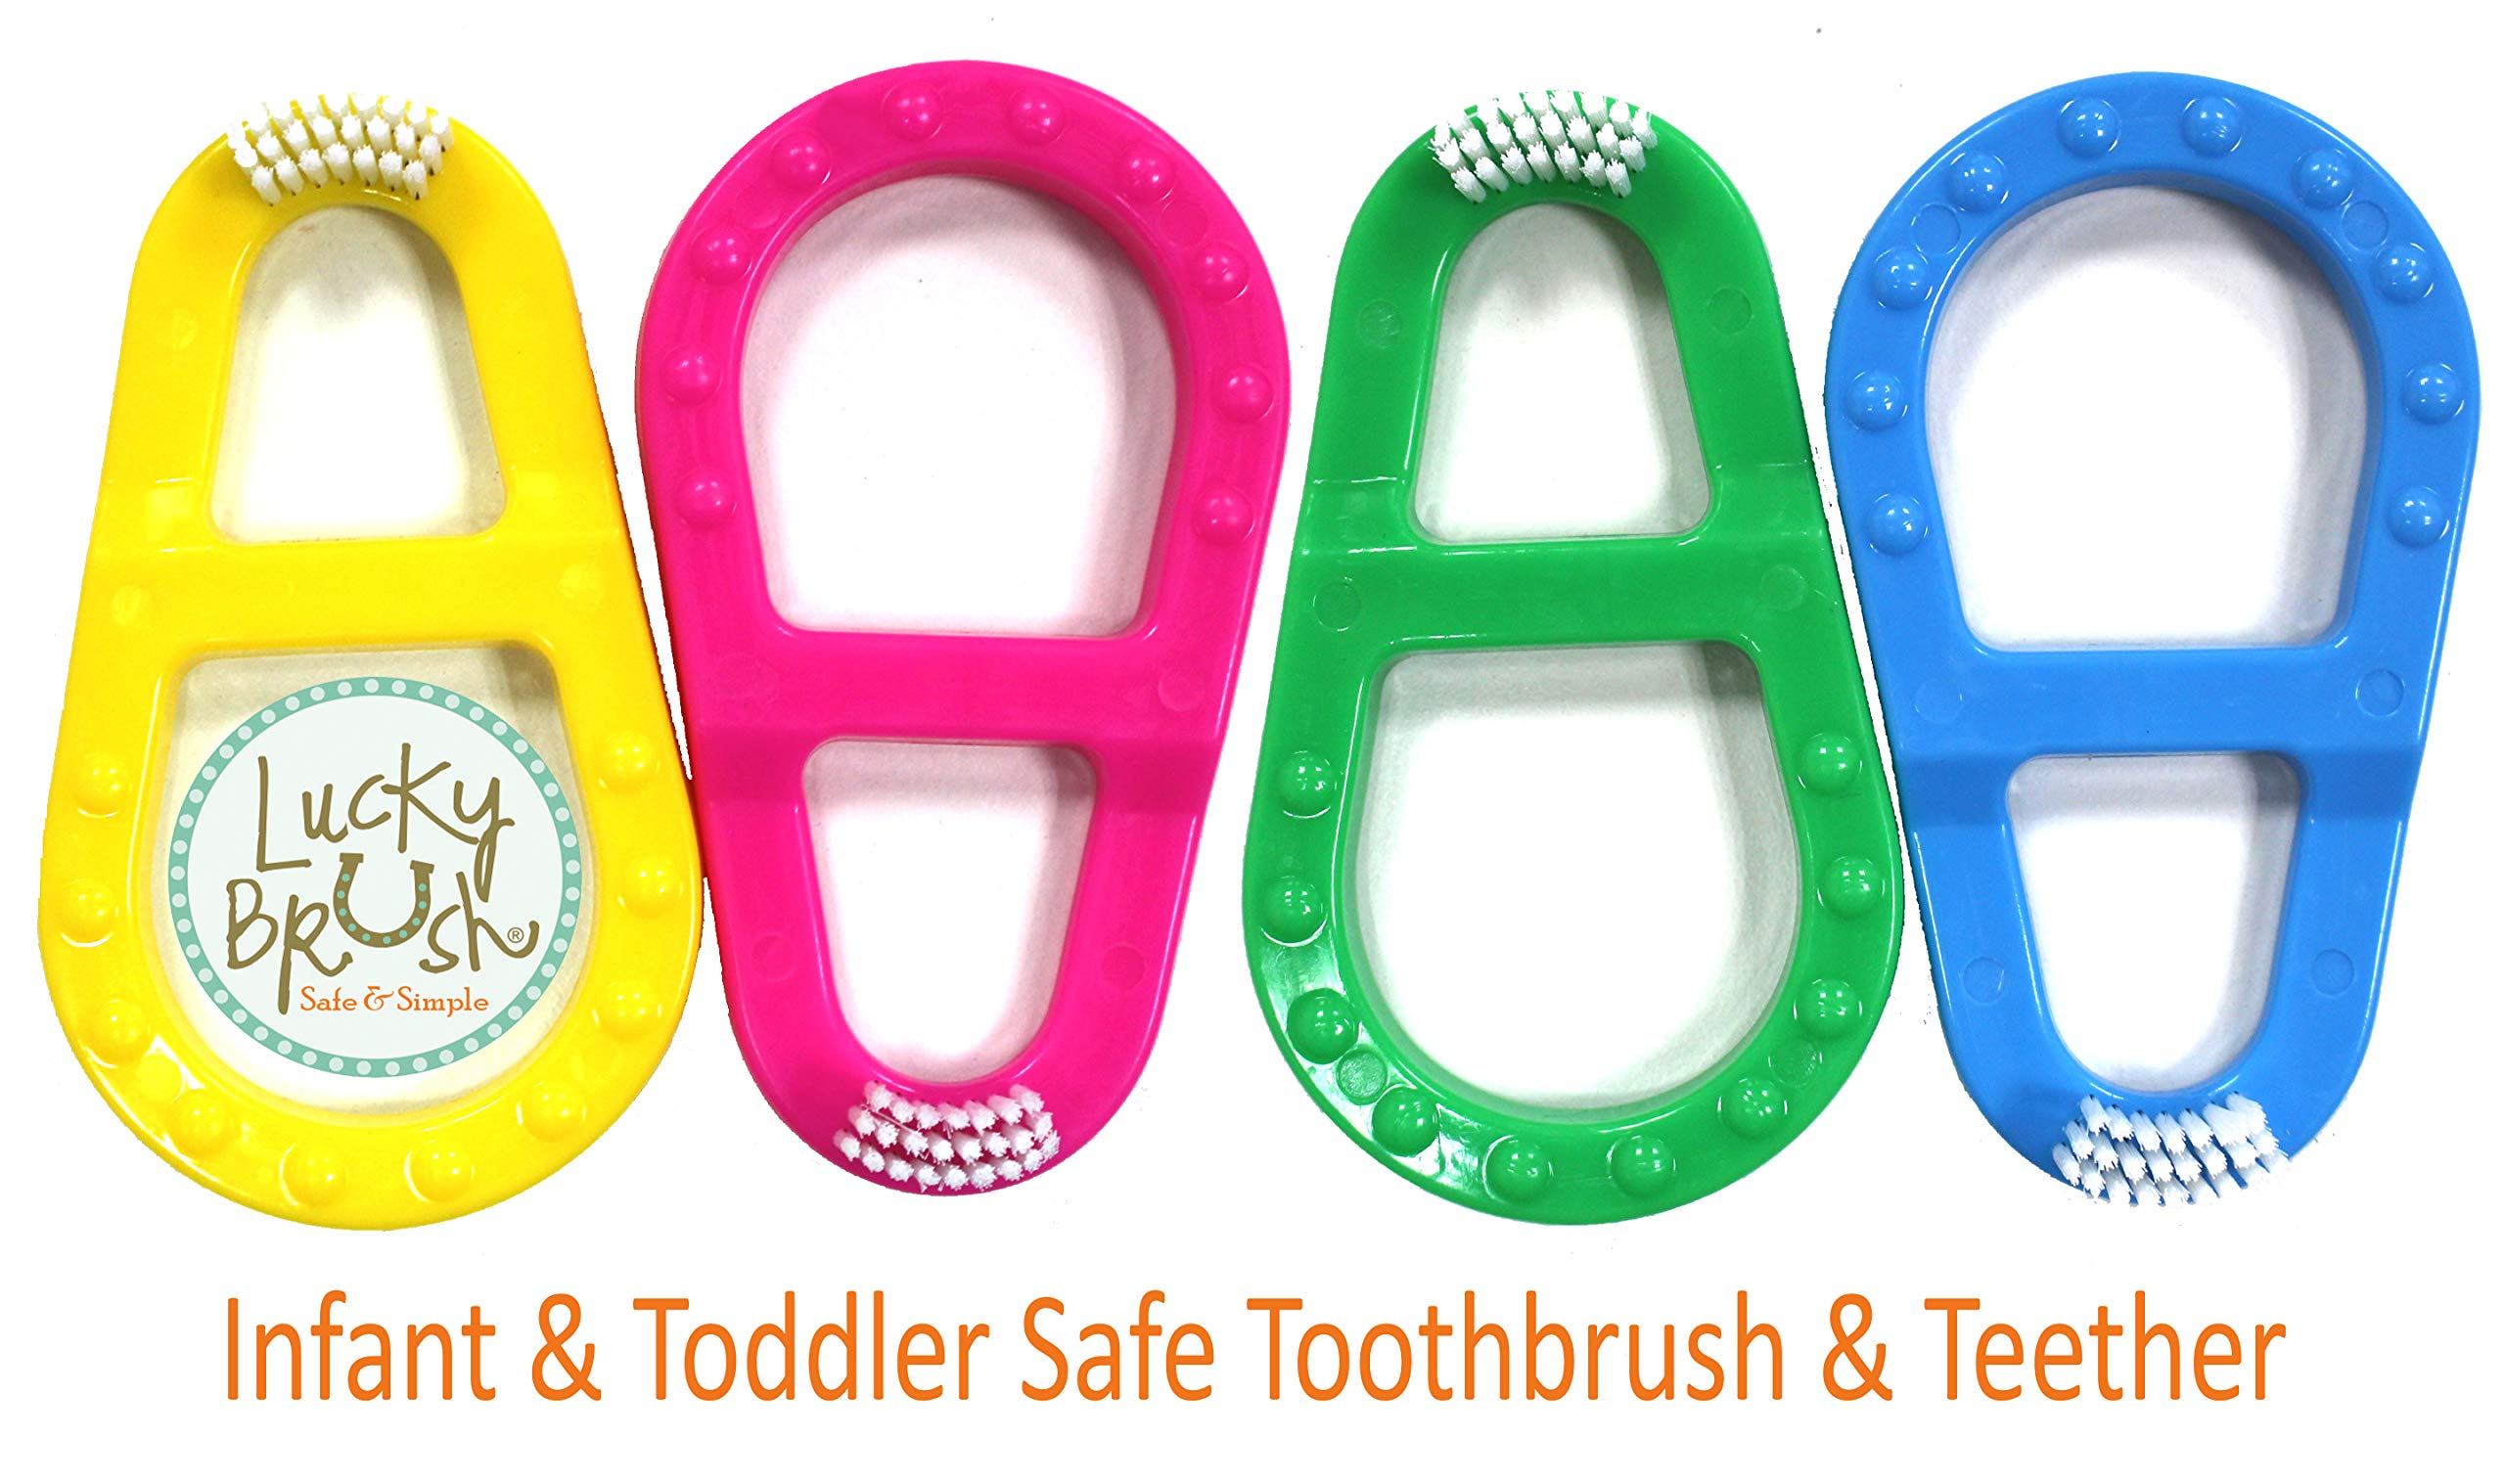 Lucky Brush Baby & Toddler Toothbrush ~ 0-3 years | Soft Bristles Gentle on Infant Gums | Promotes Healthy Oral Habits. (Easy-Grip Teether Keeps Children Safe and Healthy), Set of 4 by LUCKY BRUSH